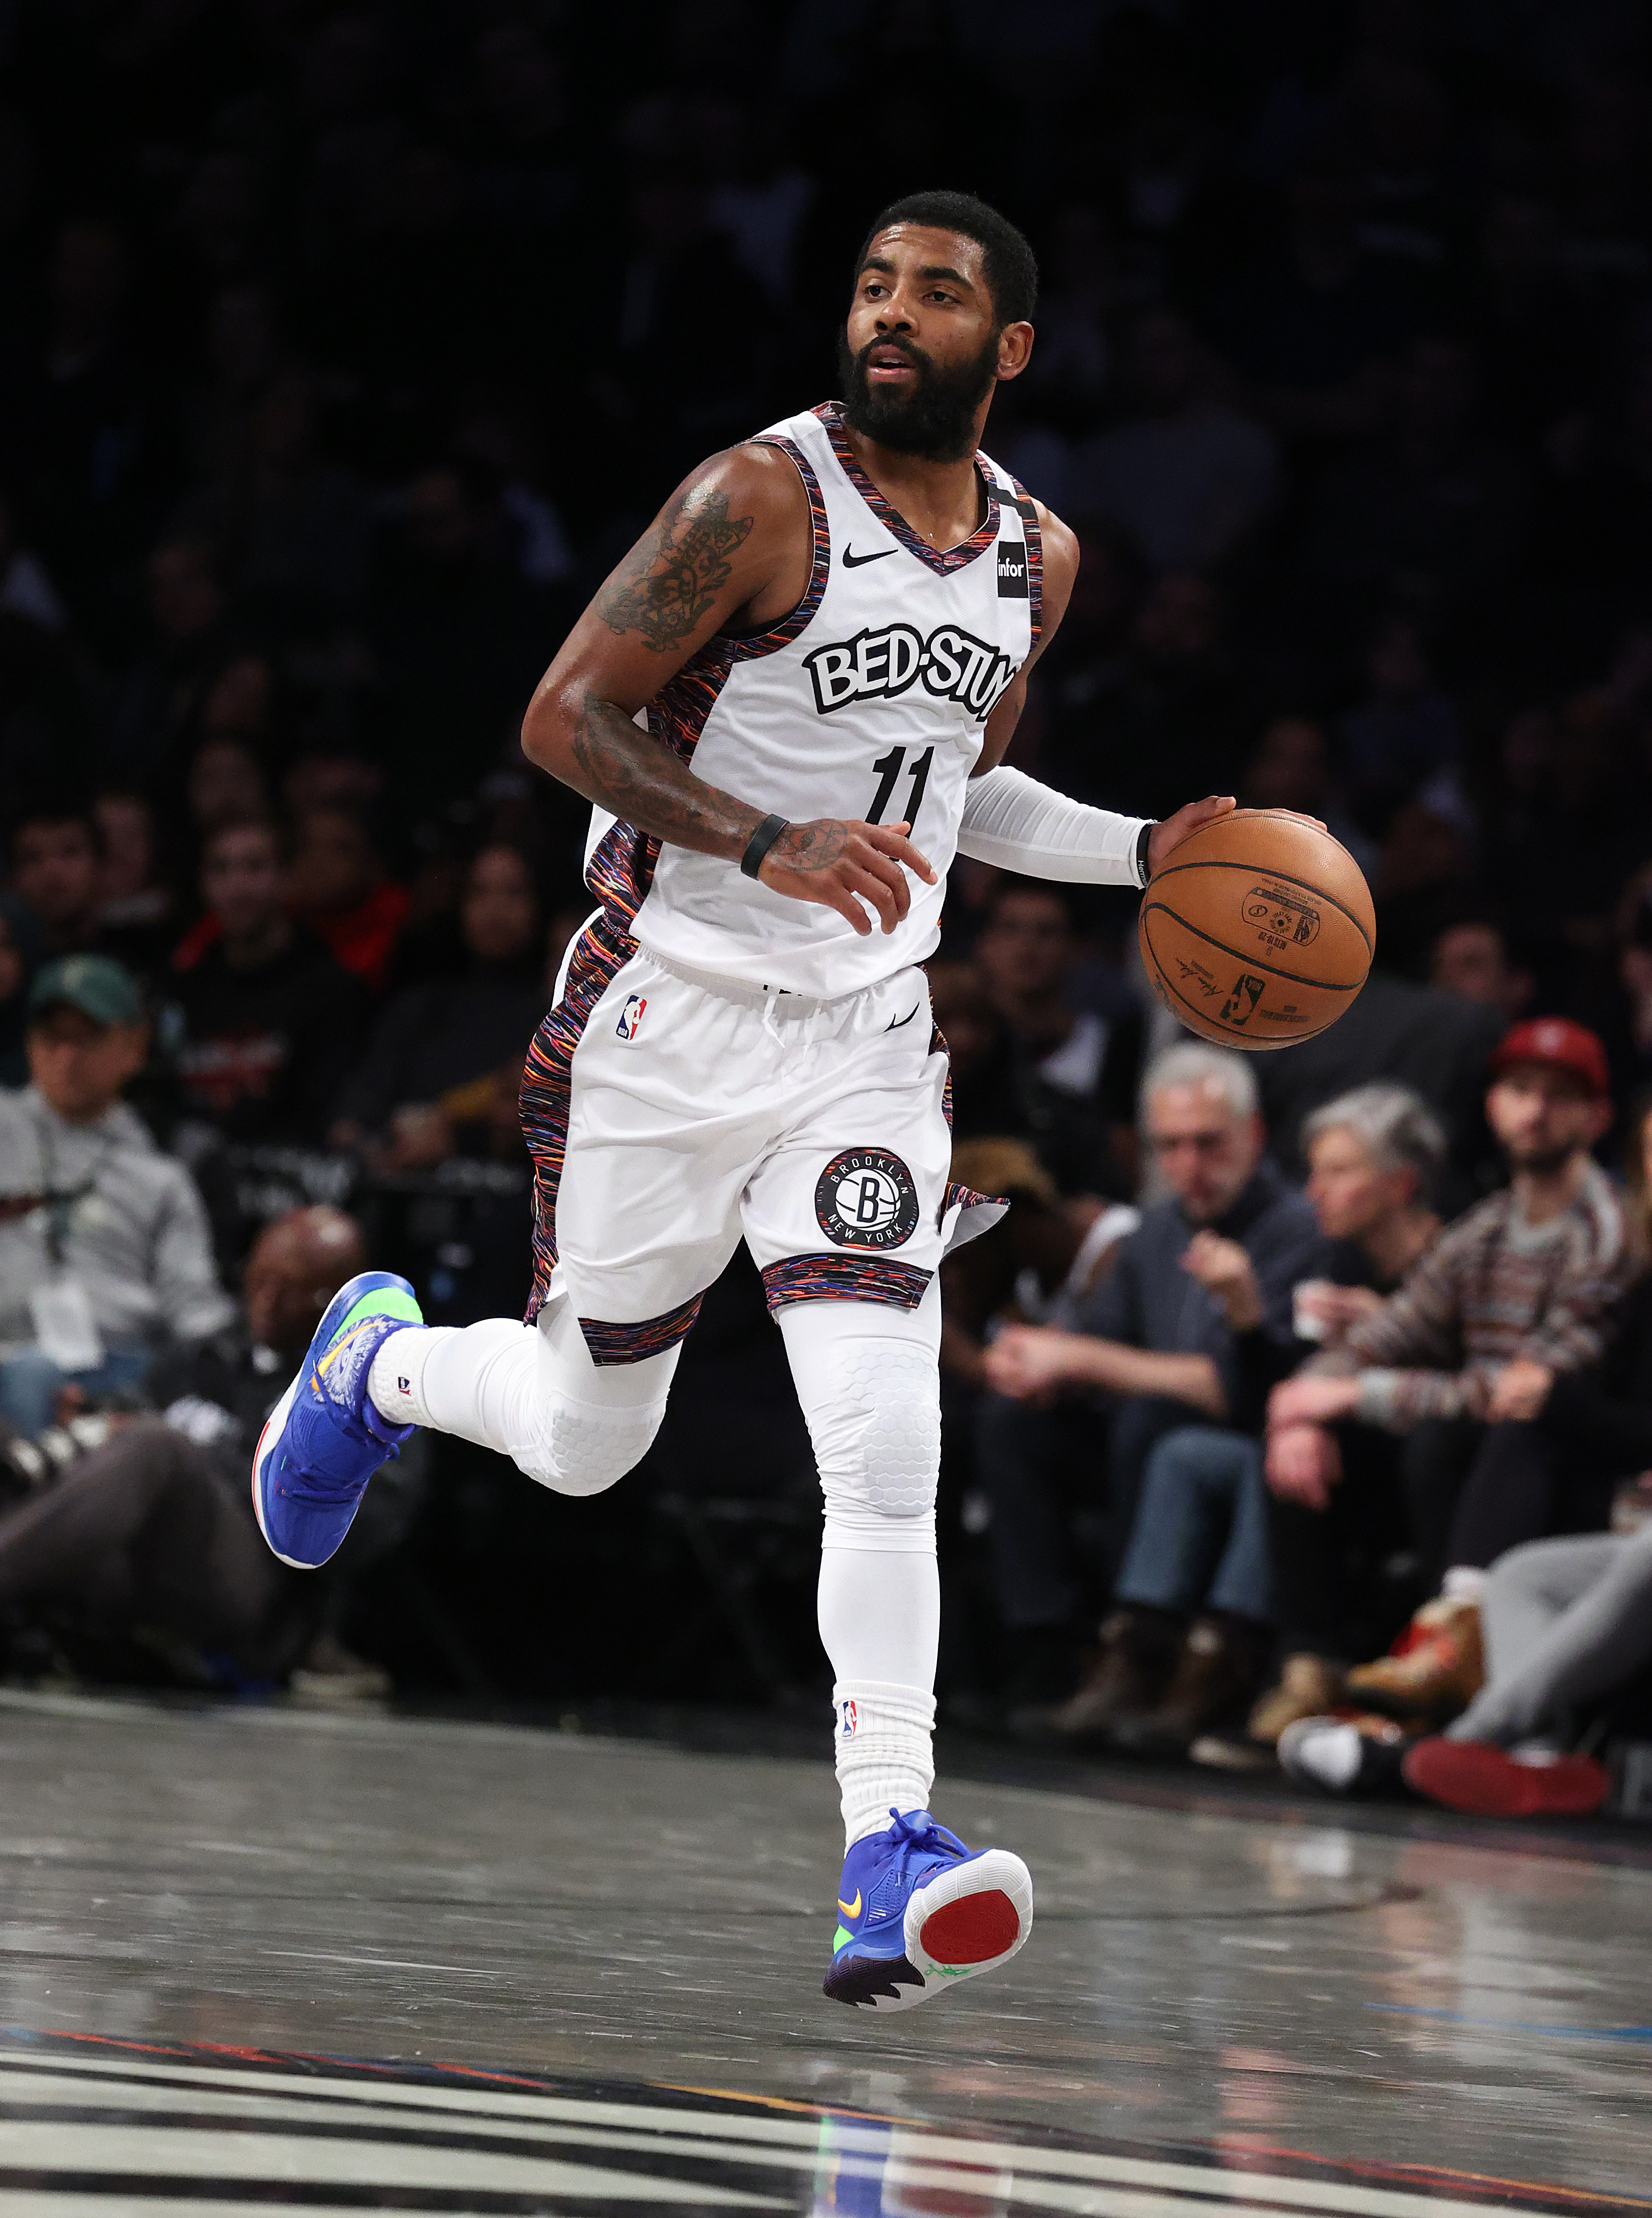 Kyrie Irving could be great